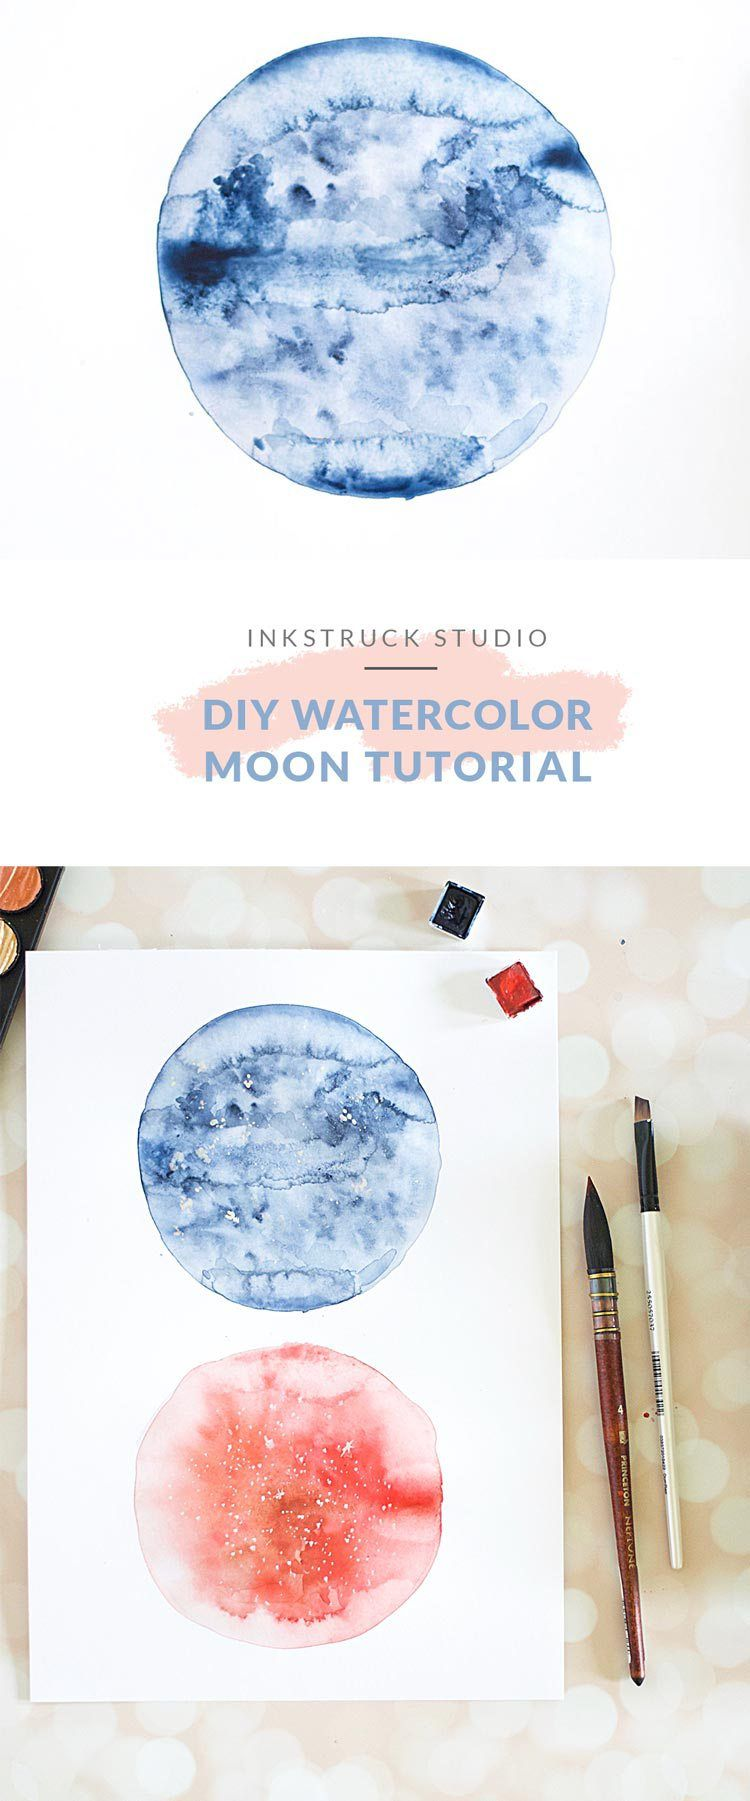 Watercolor Moon Diy Inksrtuck Studio Watercolor Moon